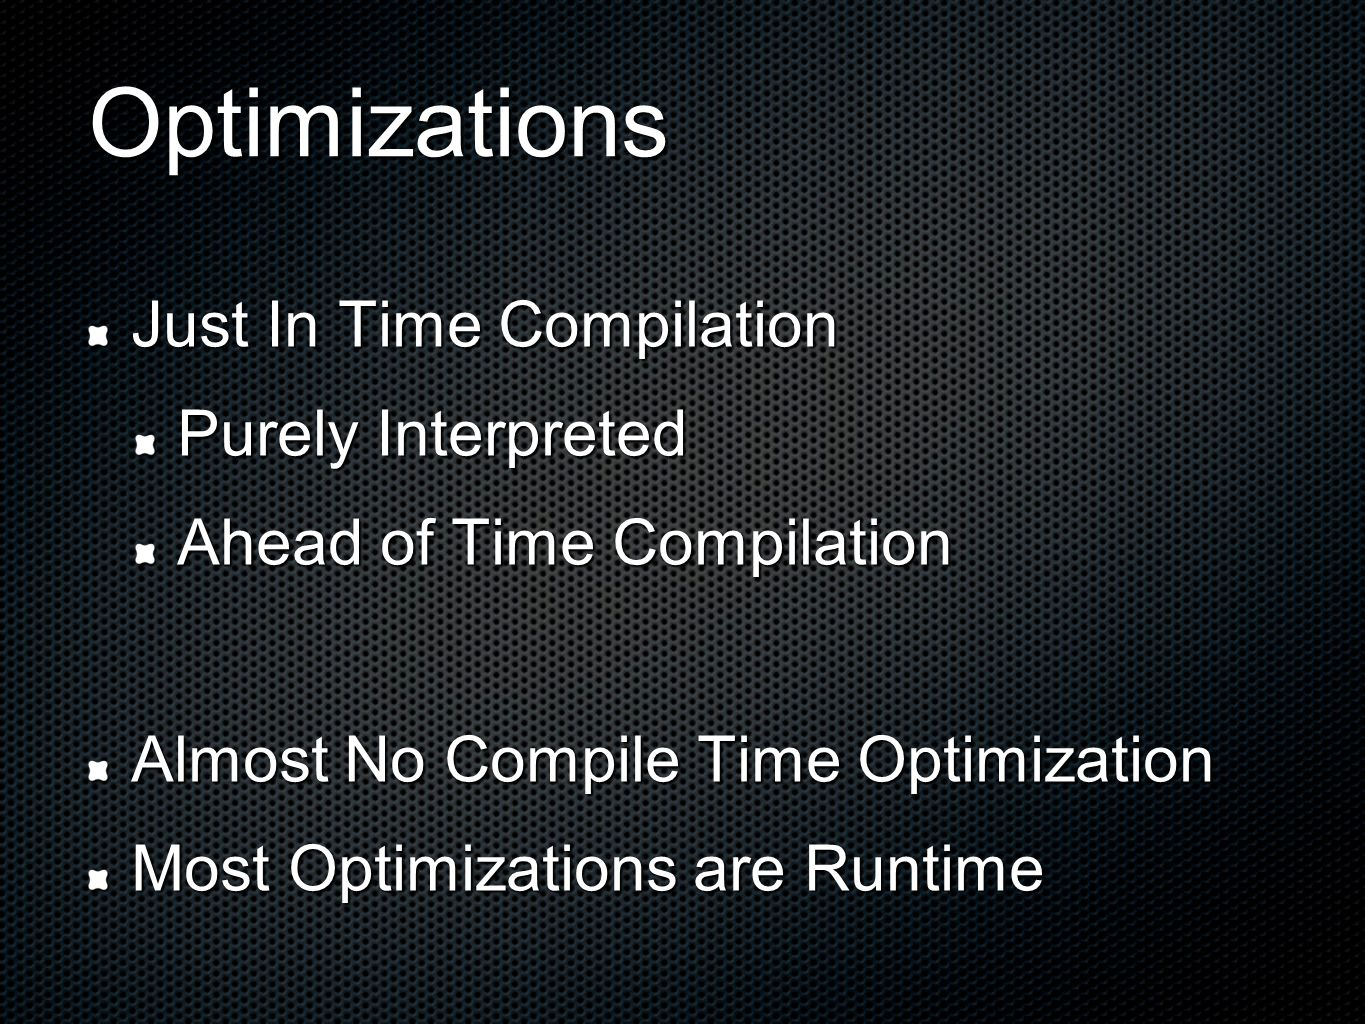 Optimizations Just In Time Compilation Purely Interpreted Ahead of Time Compilation Almost No Compile Time Optimization Most Optimizations are Runtime